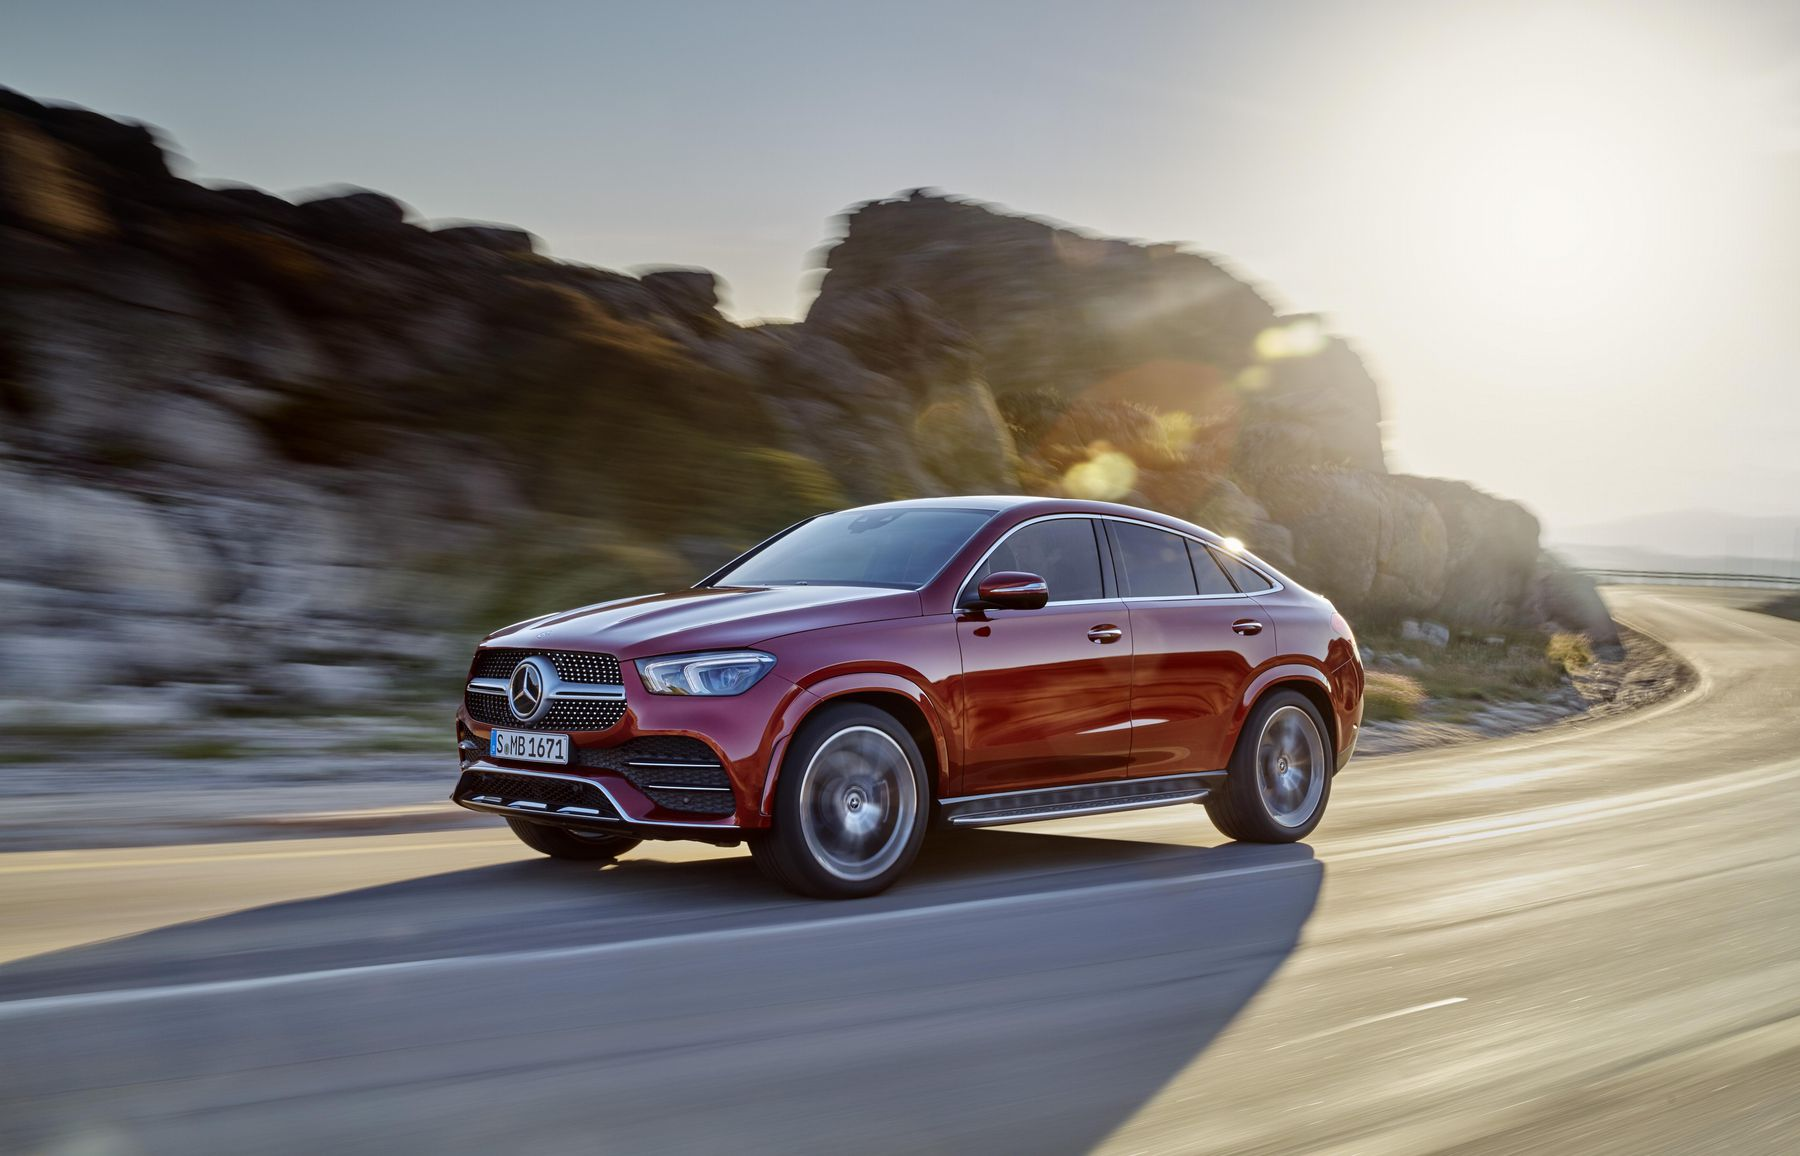 Price of Mercedes-AMG GLE 53 Coupe in Nigeria